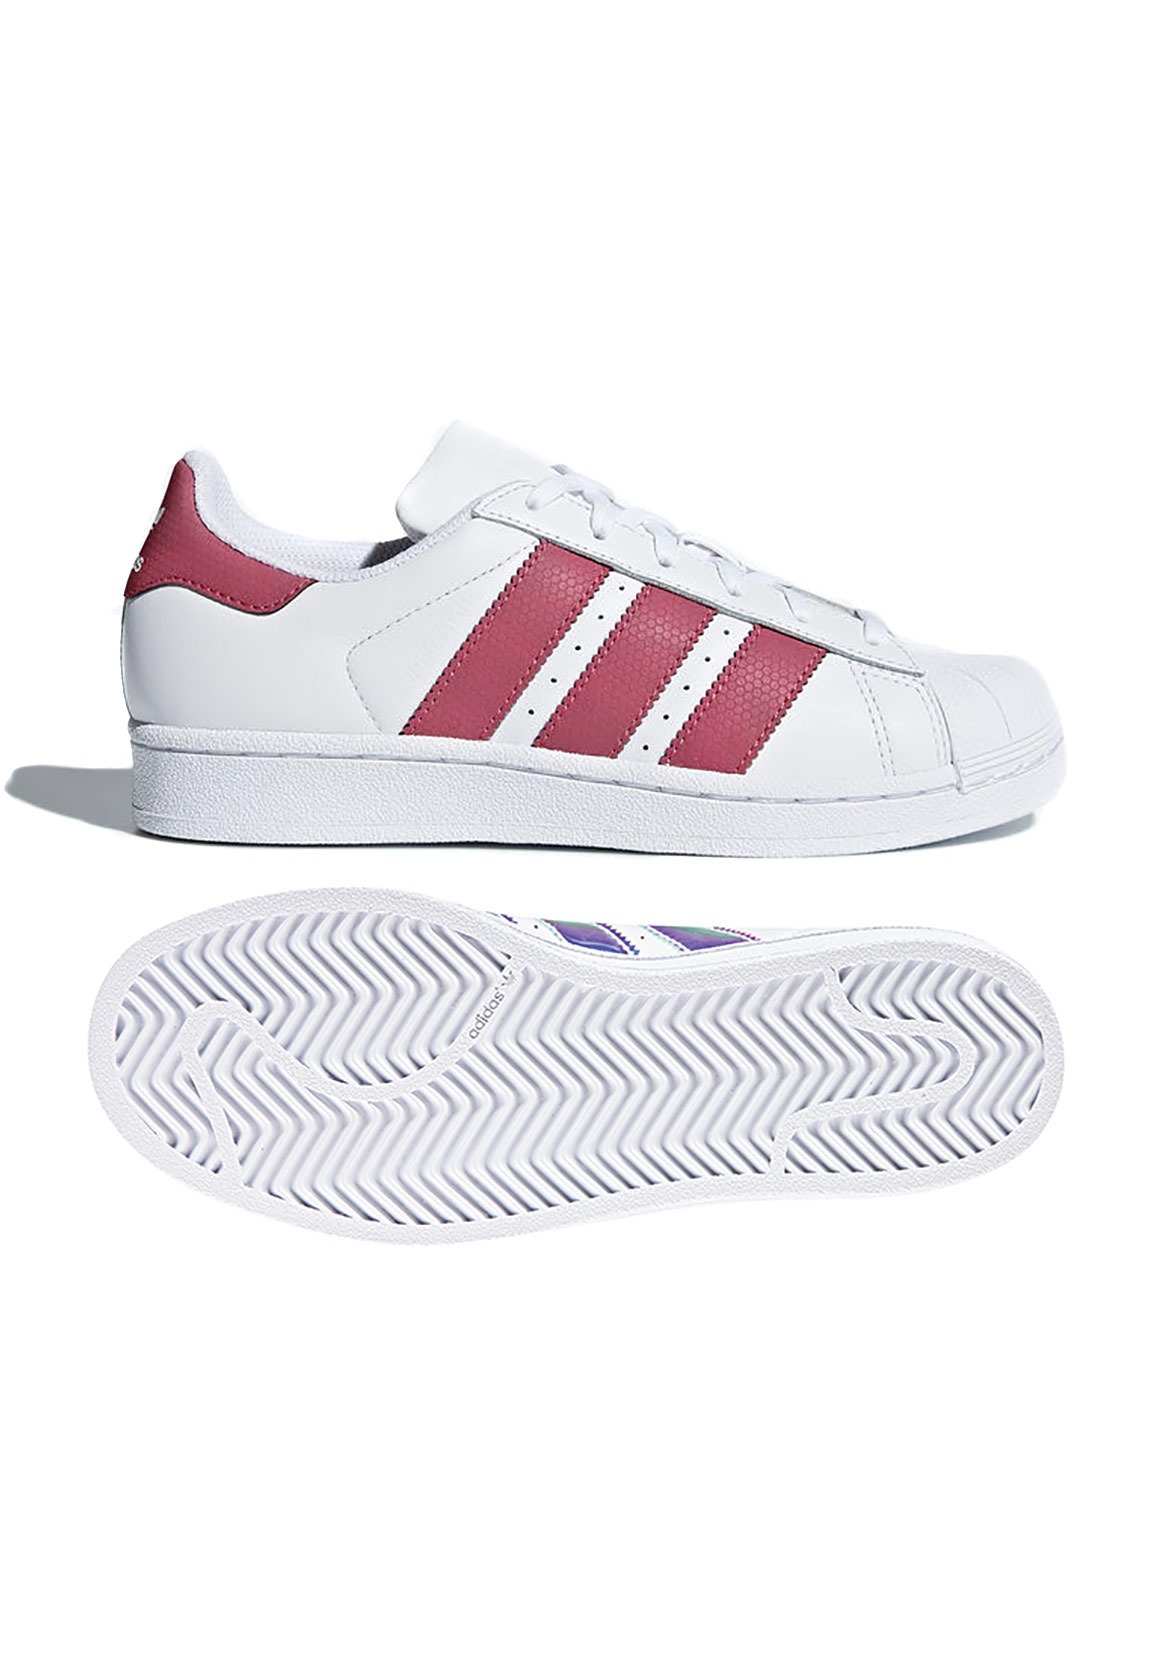 adidas originals damen superstar sneakers rosa